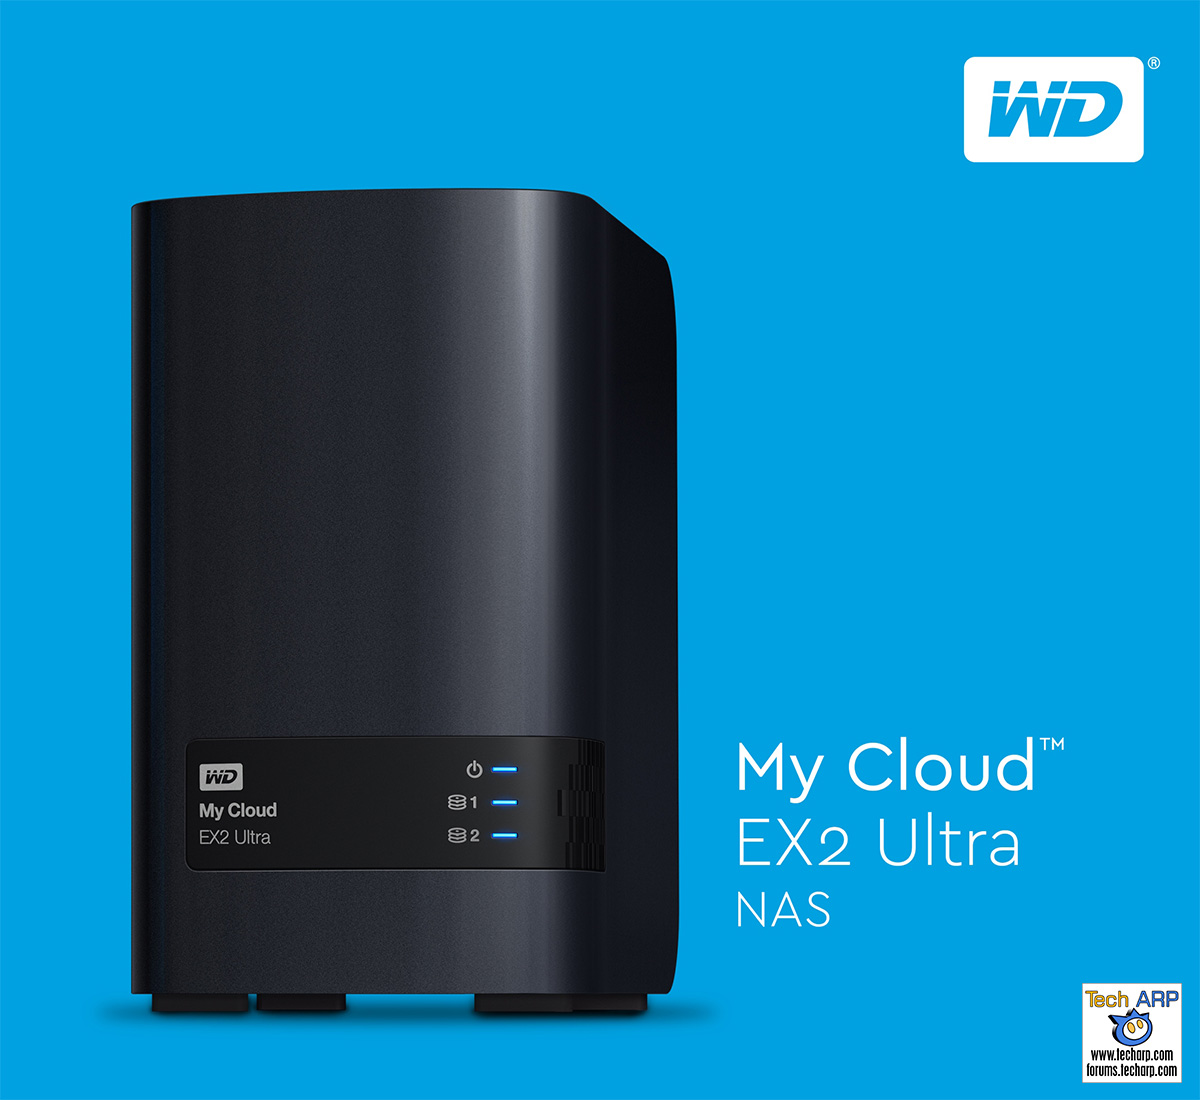 WD My Cloud EX2 Ultra Prosumer NAS Launched | Tech ARP